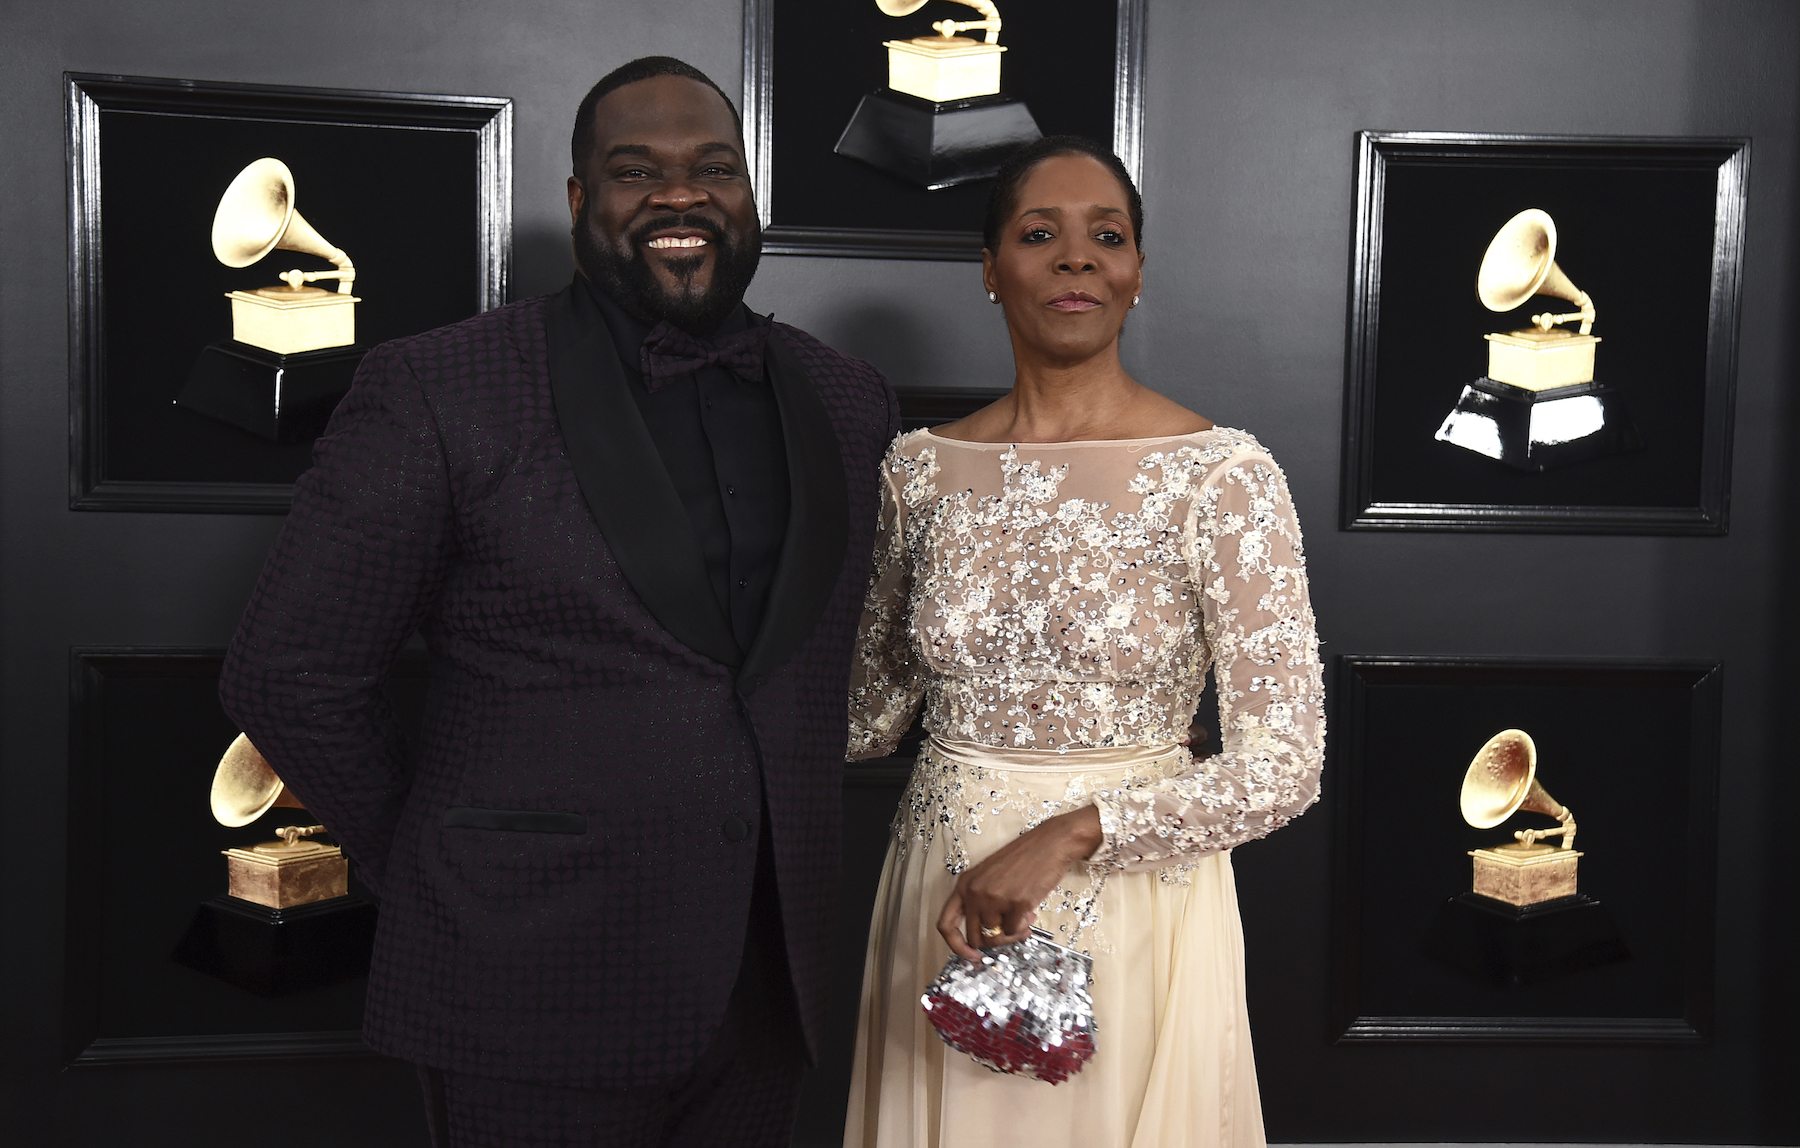 "<div class=""meta image-caption""><div class=""origin-logo origin-image ap""><span>AP</span></div><span class=""caption-text"">Phillip Boykin, left, and Felicia Richardson Boykin arrive at the 61st annual Grammy Awards at the Staples Center on Sunday, Feb. 10, 2019, in Los Angeles. (Jordan Strauss/Invision/AP)</span></div>"